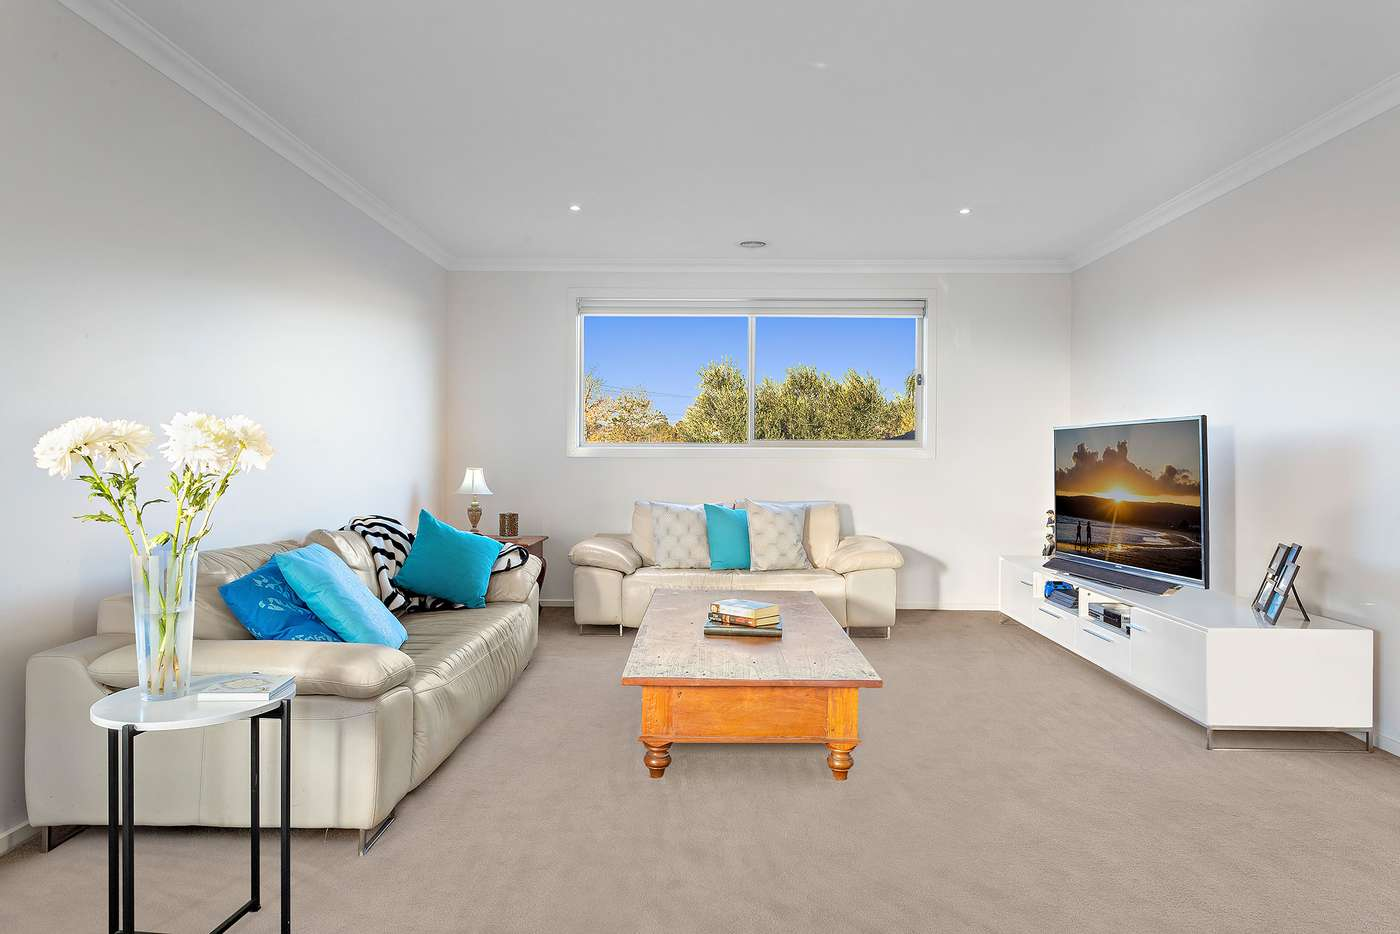 Fifth view of Homely house listing, 20 Durward Road, Malvern East VIC 3145